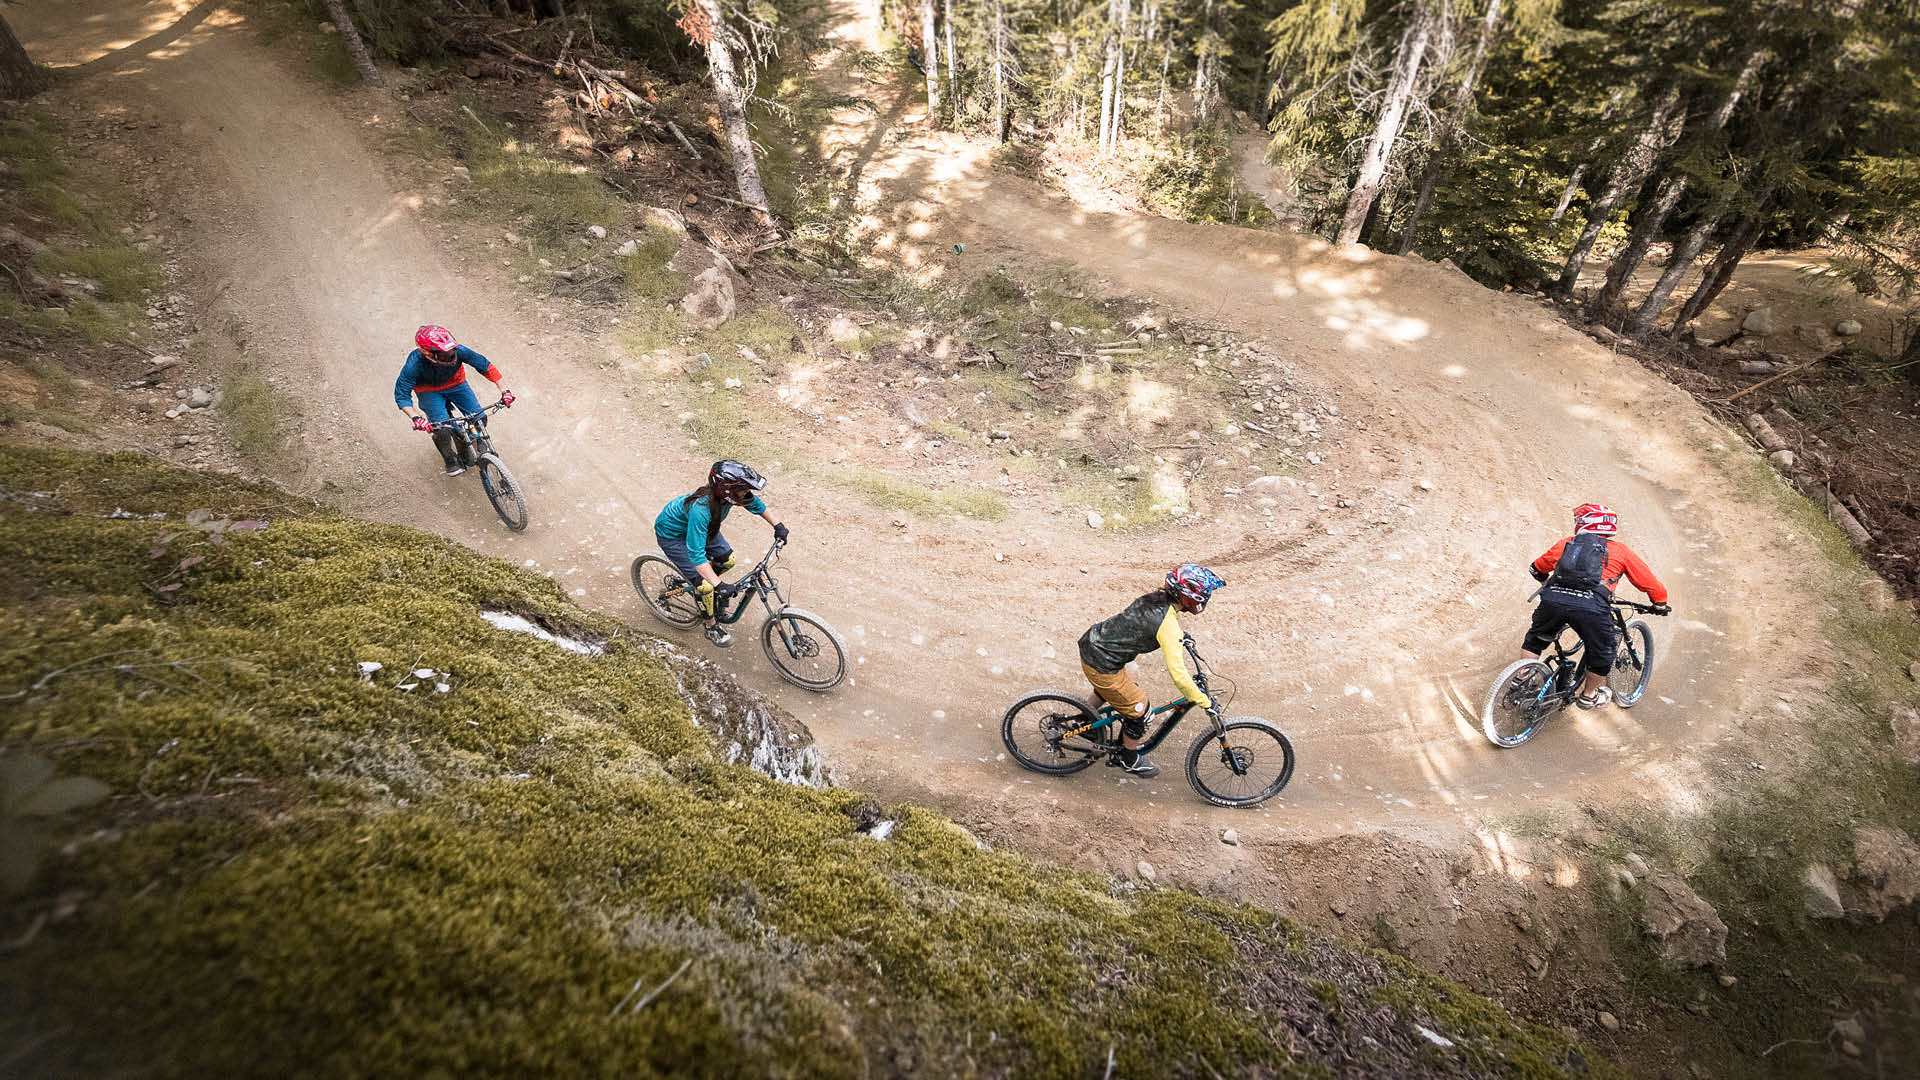 group of beginner bikers in the Bike Park